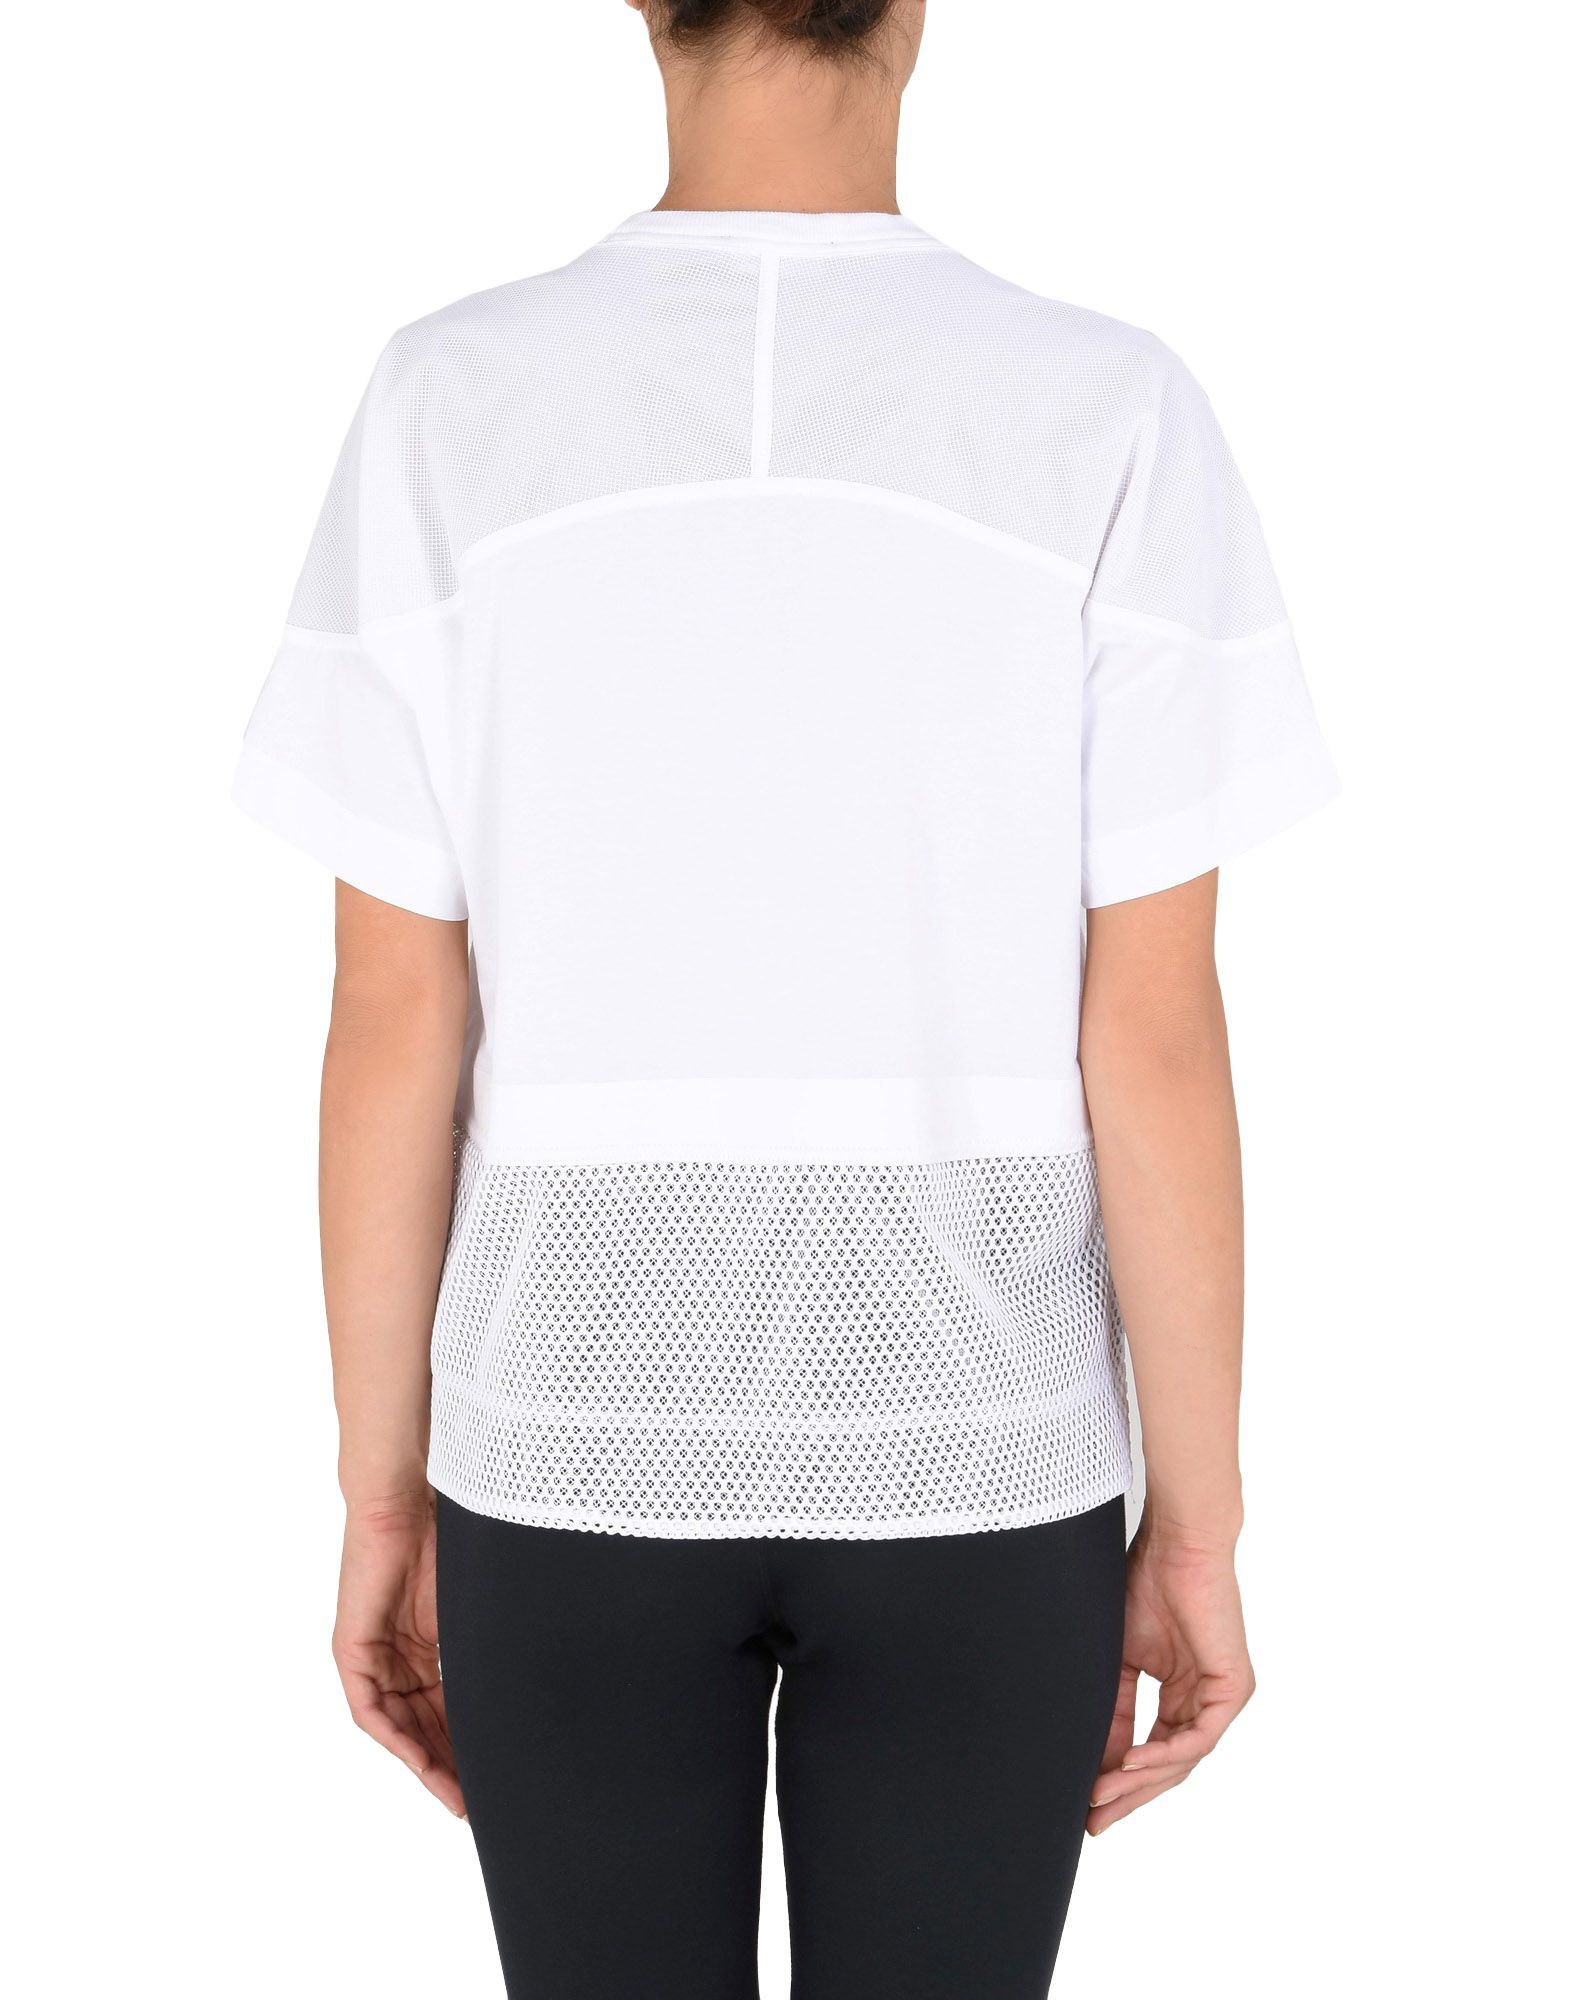 fac3c7be95b3d ADIDAS by STELLA McCARTNEY ESS MESH TEE Sports bras and performance tops  White women 70% Cotton 30% Polyester [12075433AP]